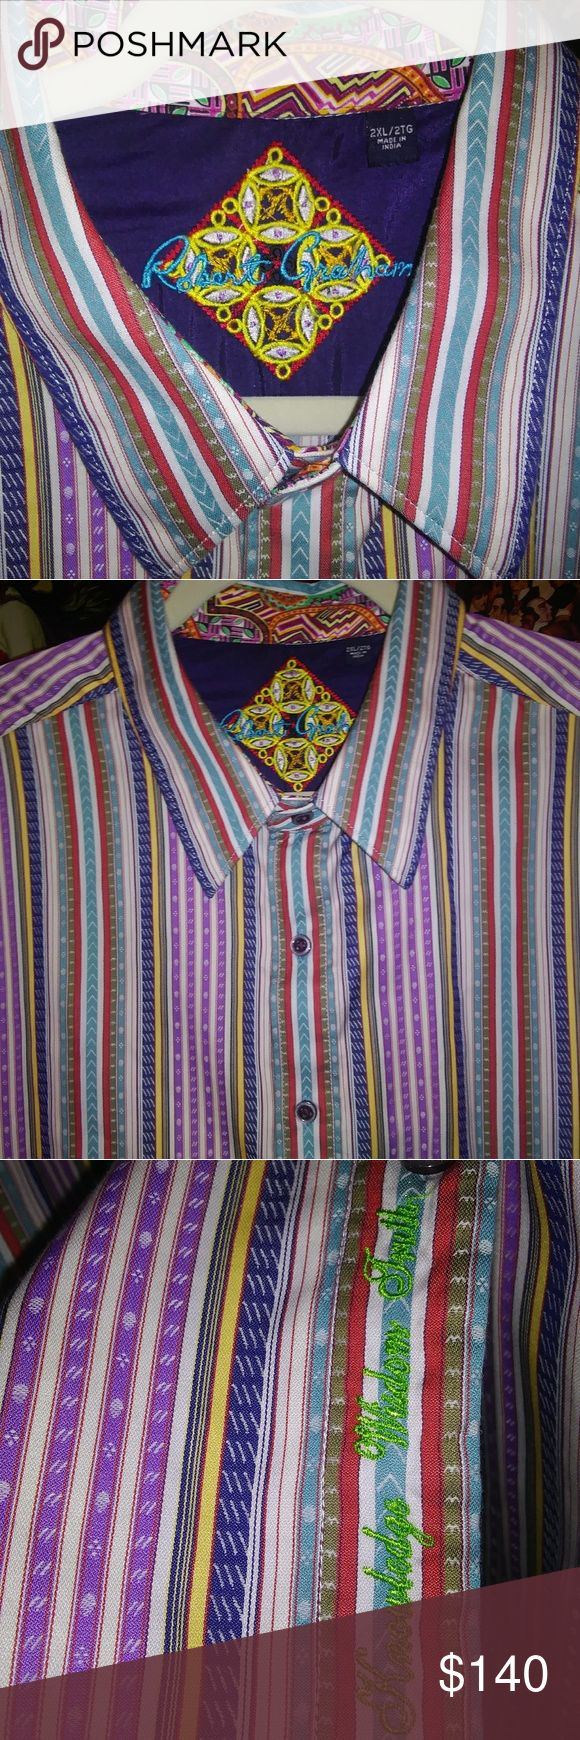 """ROBERT GRAHAM MEN'S 2XL EXCELLENT CONDITION AUTHENTIC R.G. Limited EDITION Designer Men's Long sleeve button down shirt..Size 2XL..his initials on left sleeve with his authentic signature logo on front shirt tail hem """"Knowledge Wisdom Truth""""..this is a digital screen print on 100% Imported cotton poplin..Contrast fabric inside collar & cuffs..Created & crafted in India..CREATIVE STYLISH ART on a SHIRT..:)..ALL offers will be considered!!! Robert Graham Shirts Casual Button Down Shirts"""